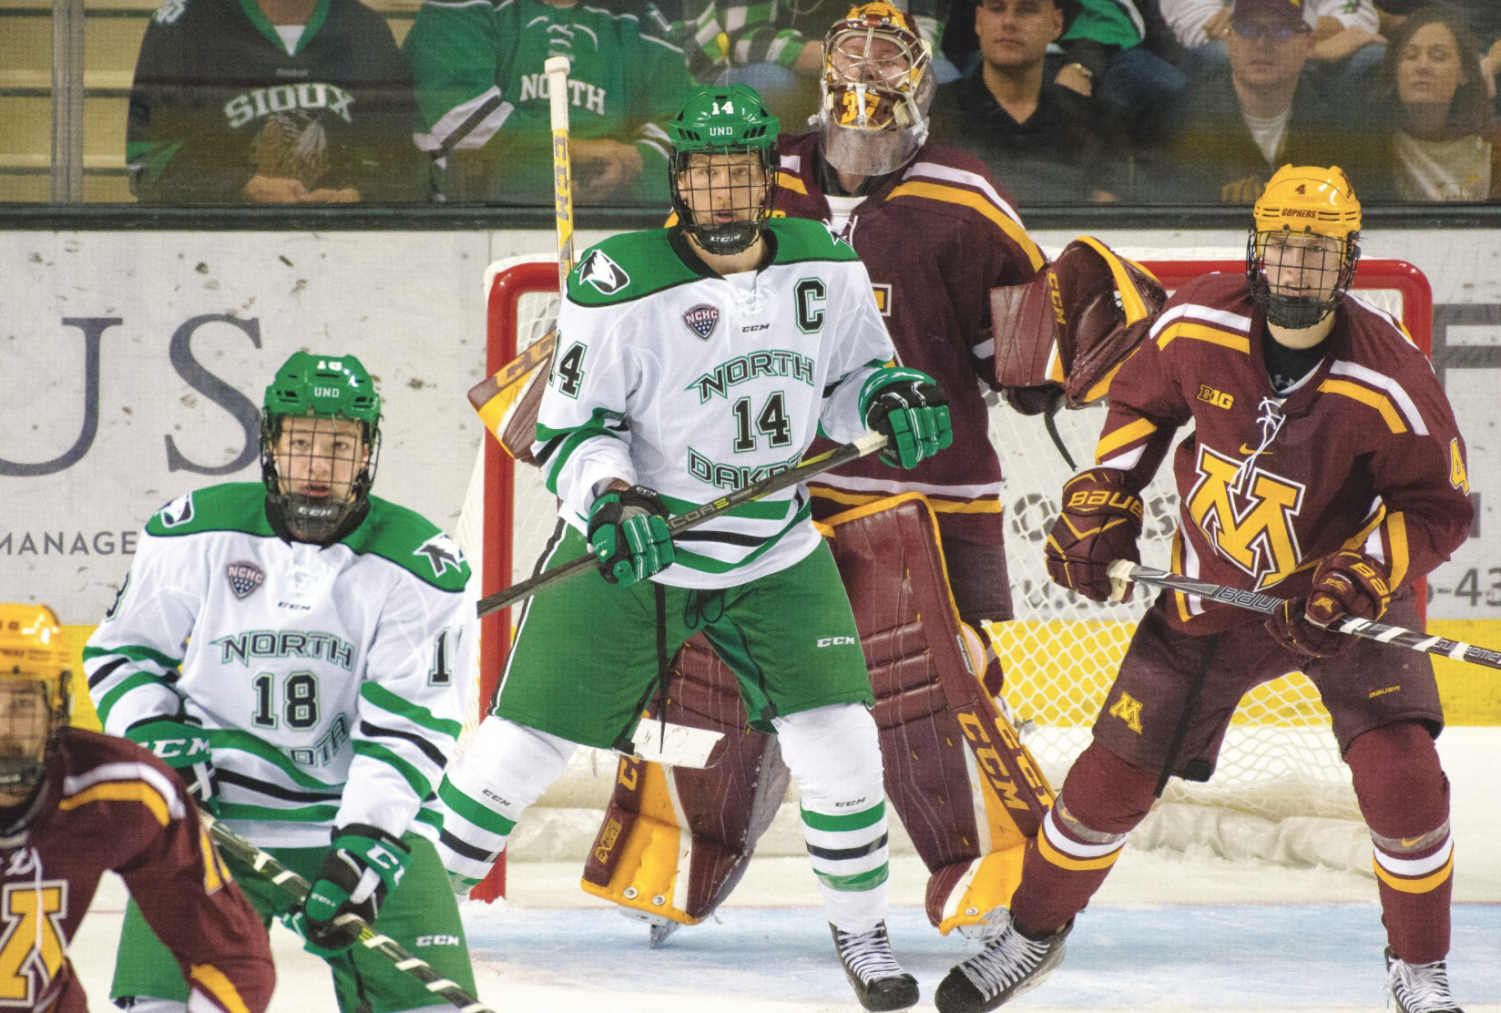 Within the National Collegiate Hockey Conference (NCHC), no players on the UND men's hockey team were submitted to be Hobey Maker nominees this year